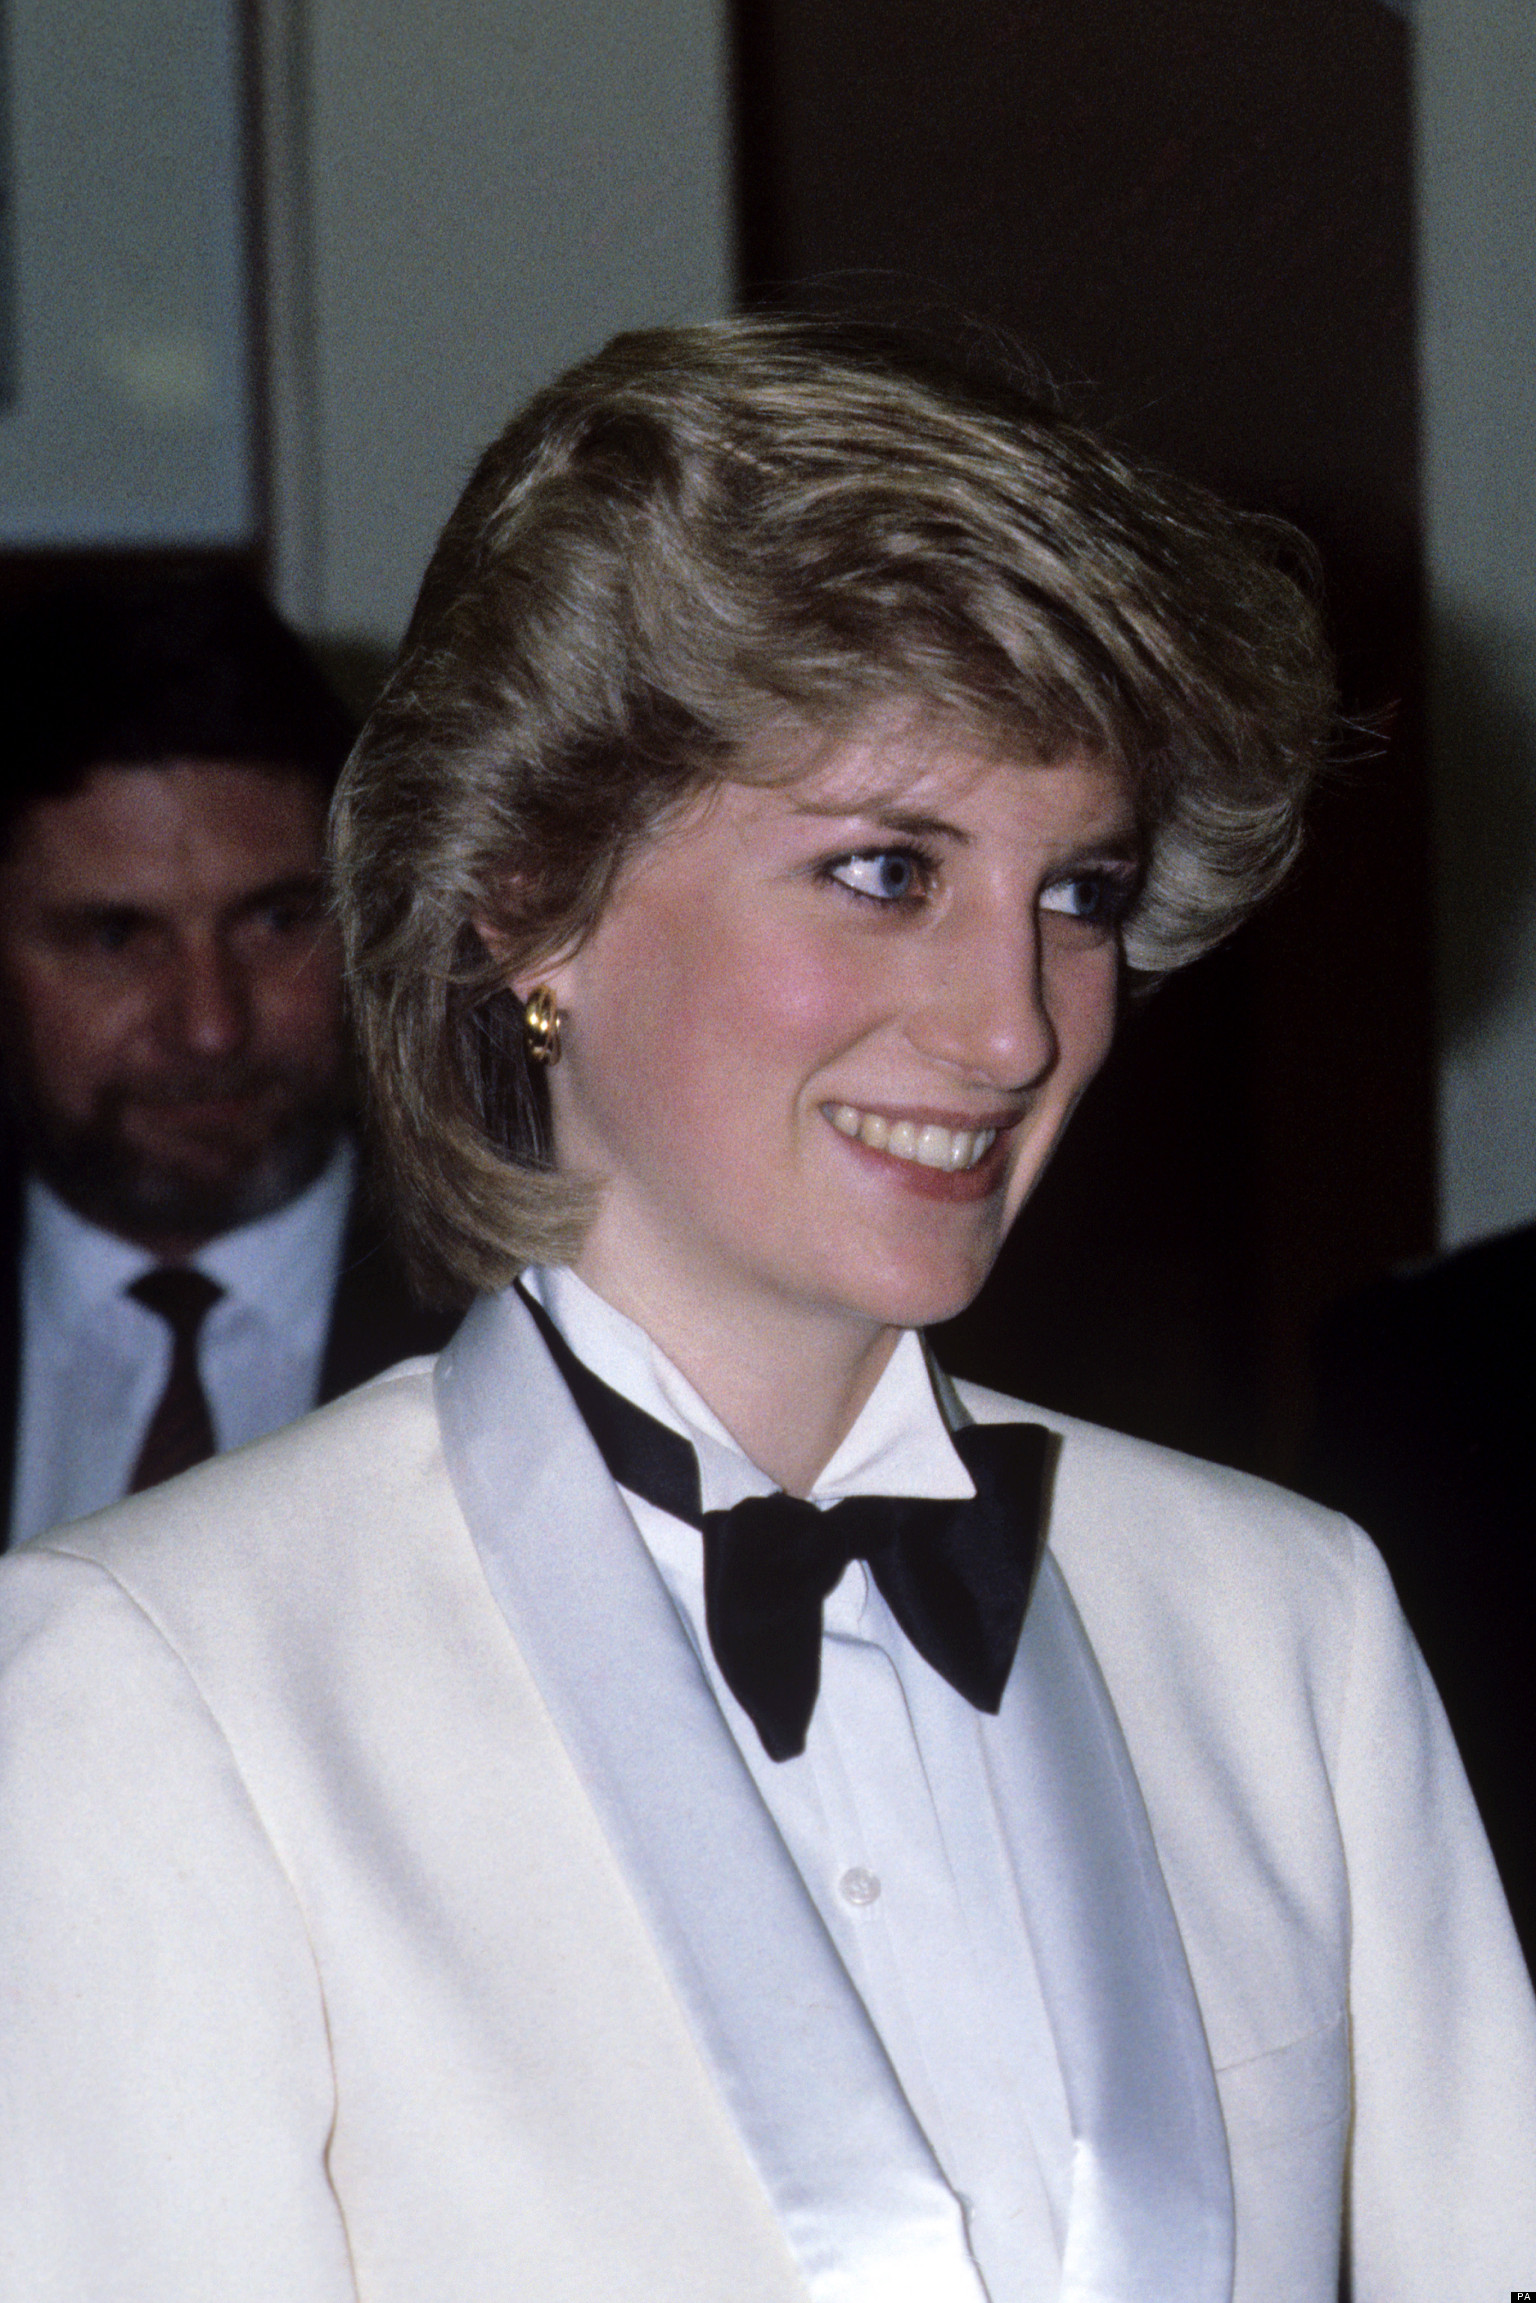 princess diana 39 sneaked into gay bar dressed as man 39 with